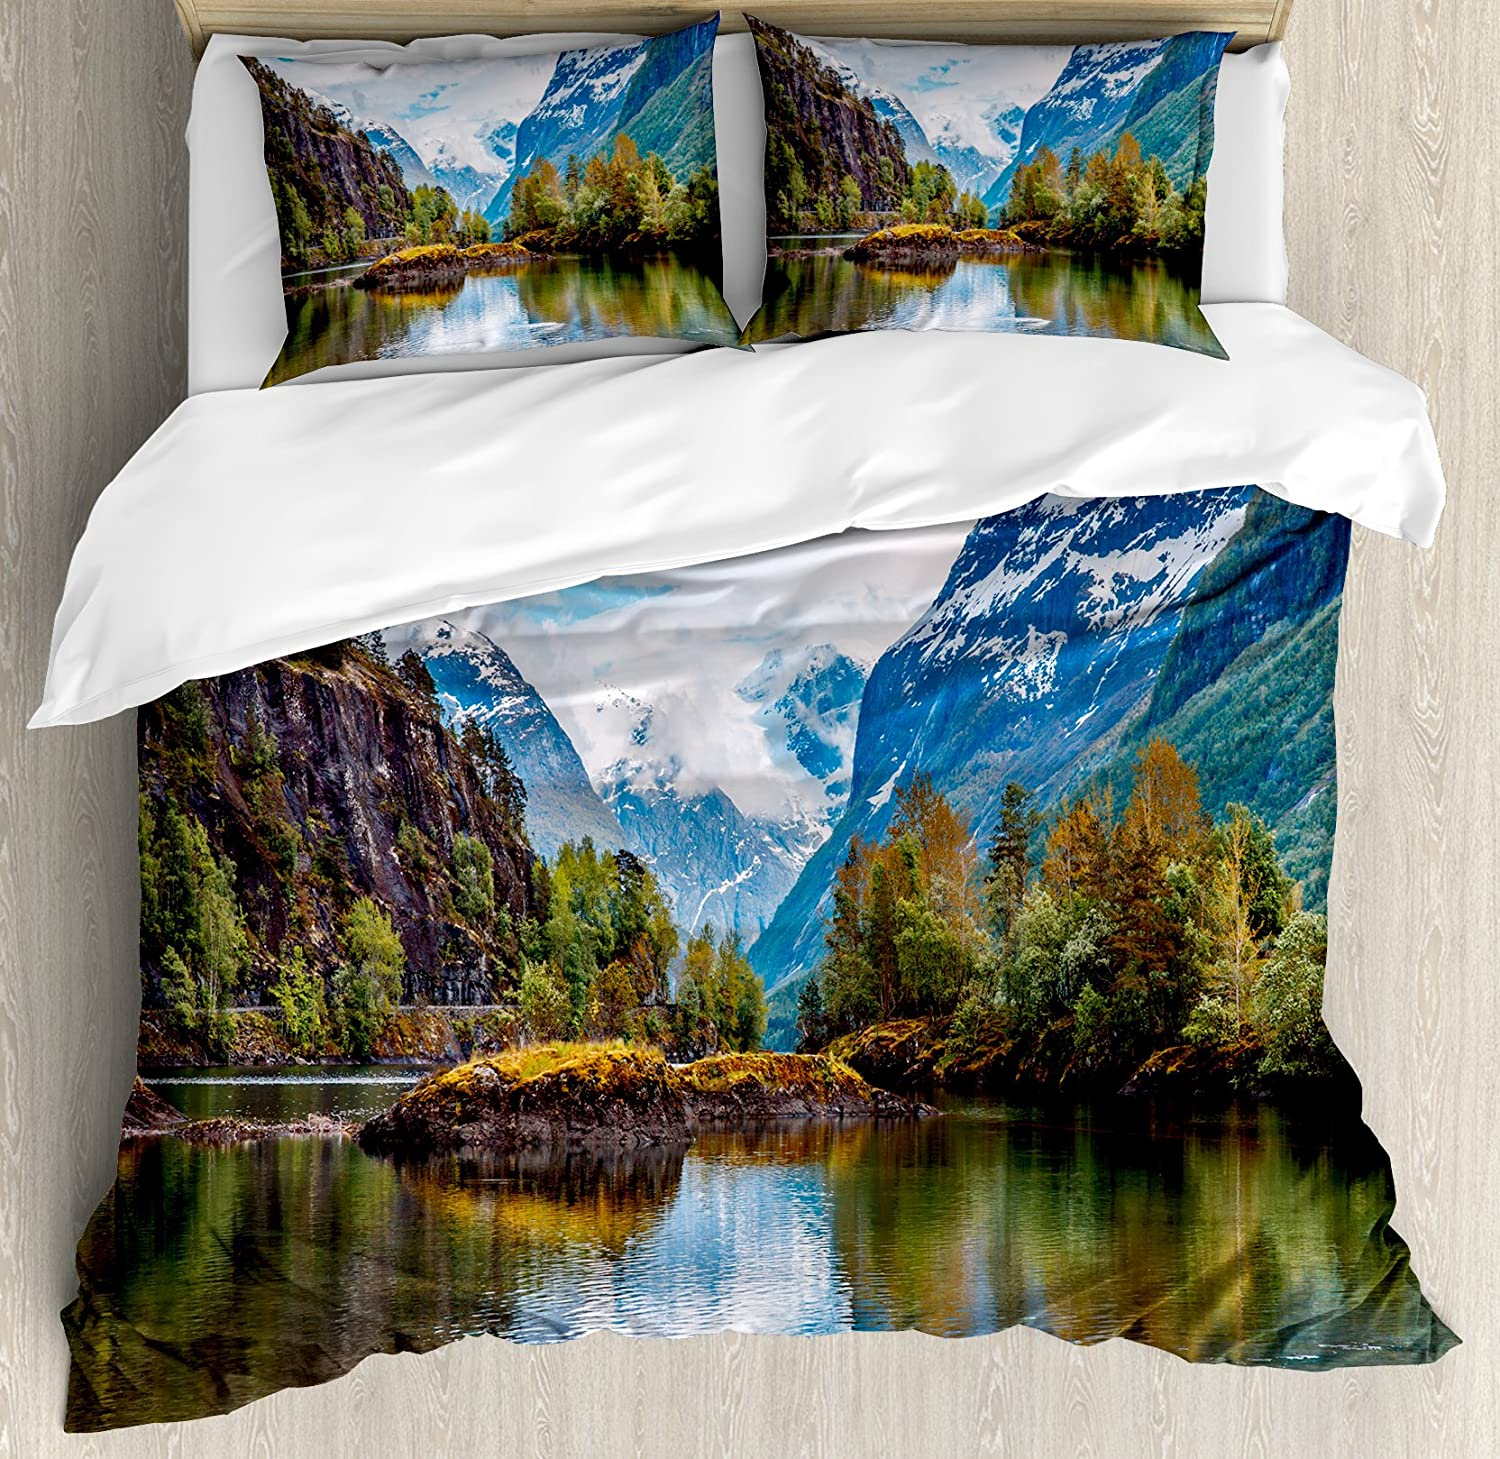 Ambesonne Nature Duvet Cover Set, Norway Mountain Range with Snowy Peaks by The Lake Fishing Nordic Northern Landscape, Decorative 3 Piece Bedding Set with 2 Pillow Shams, King Size, Blue Brown